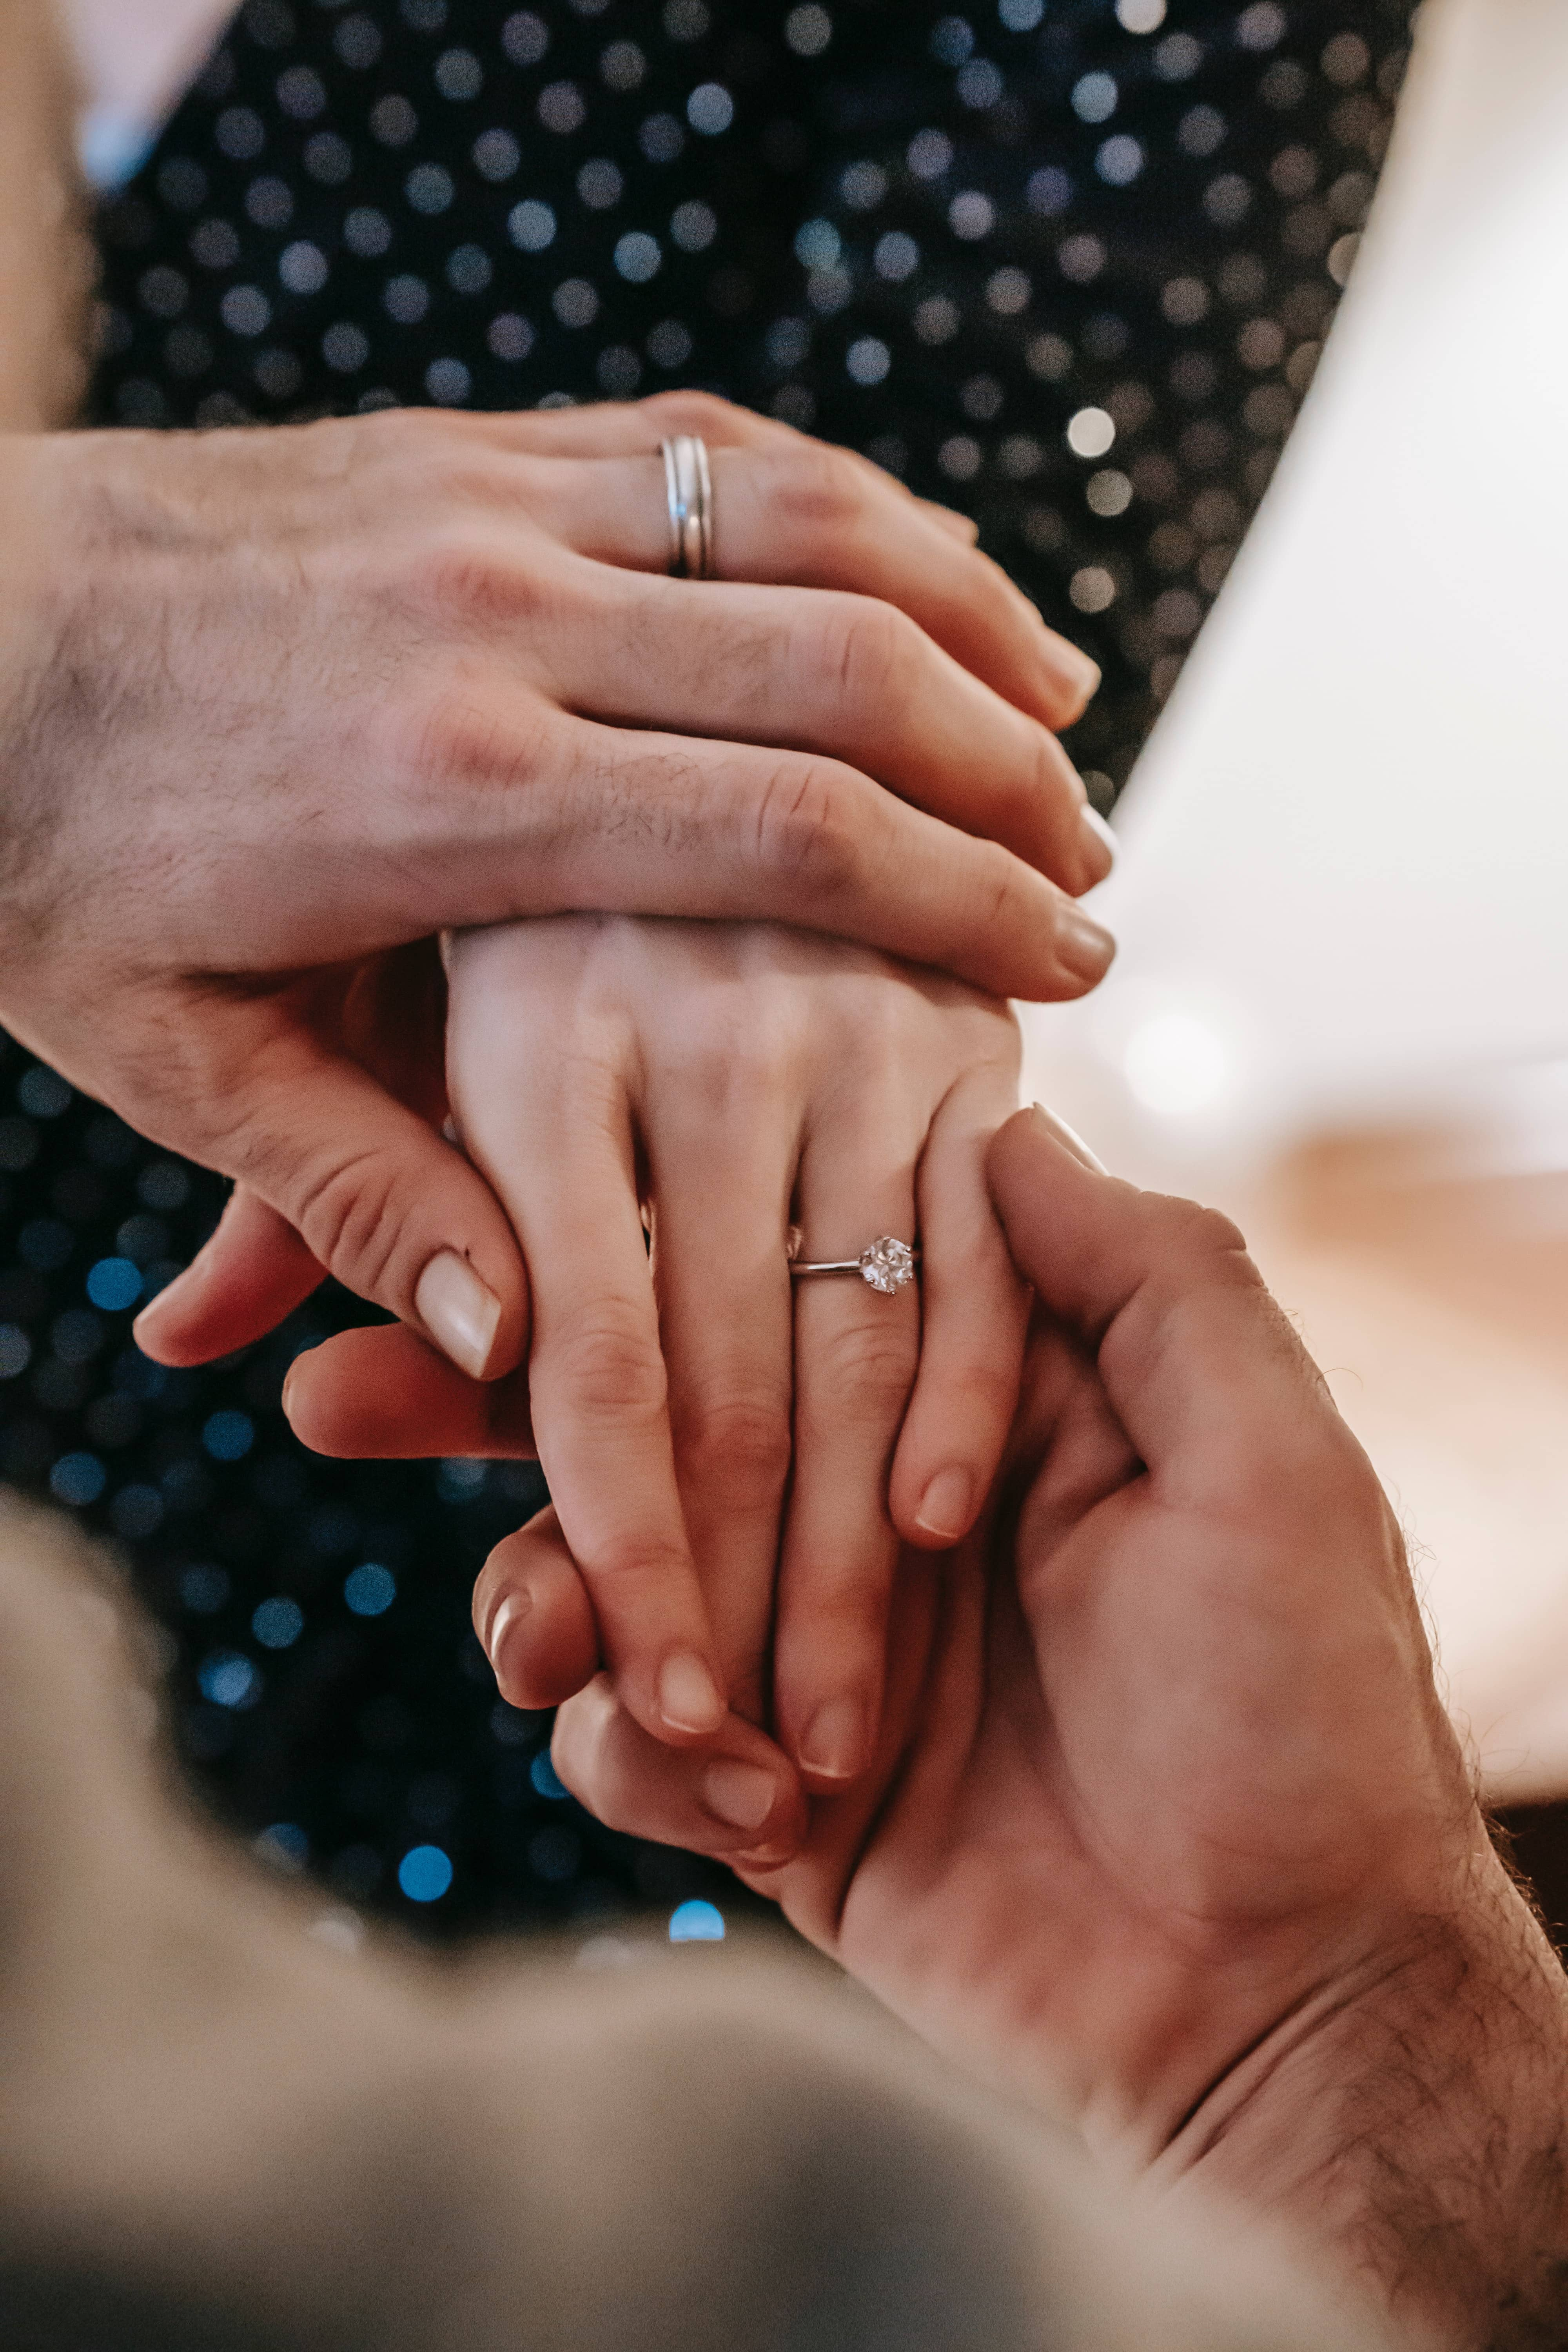 A man holding a woman's hand with an engagement ring